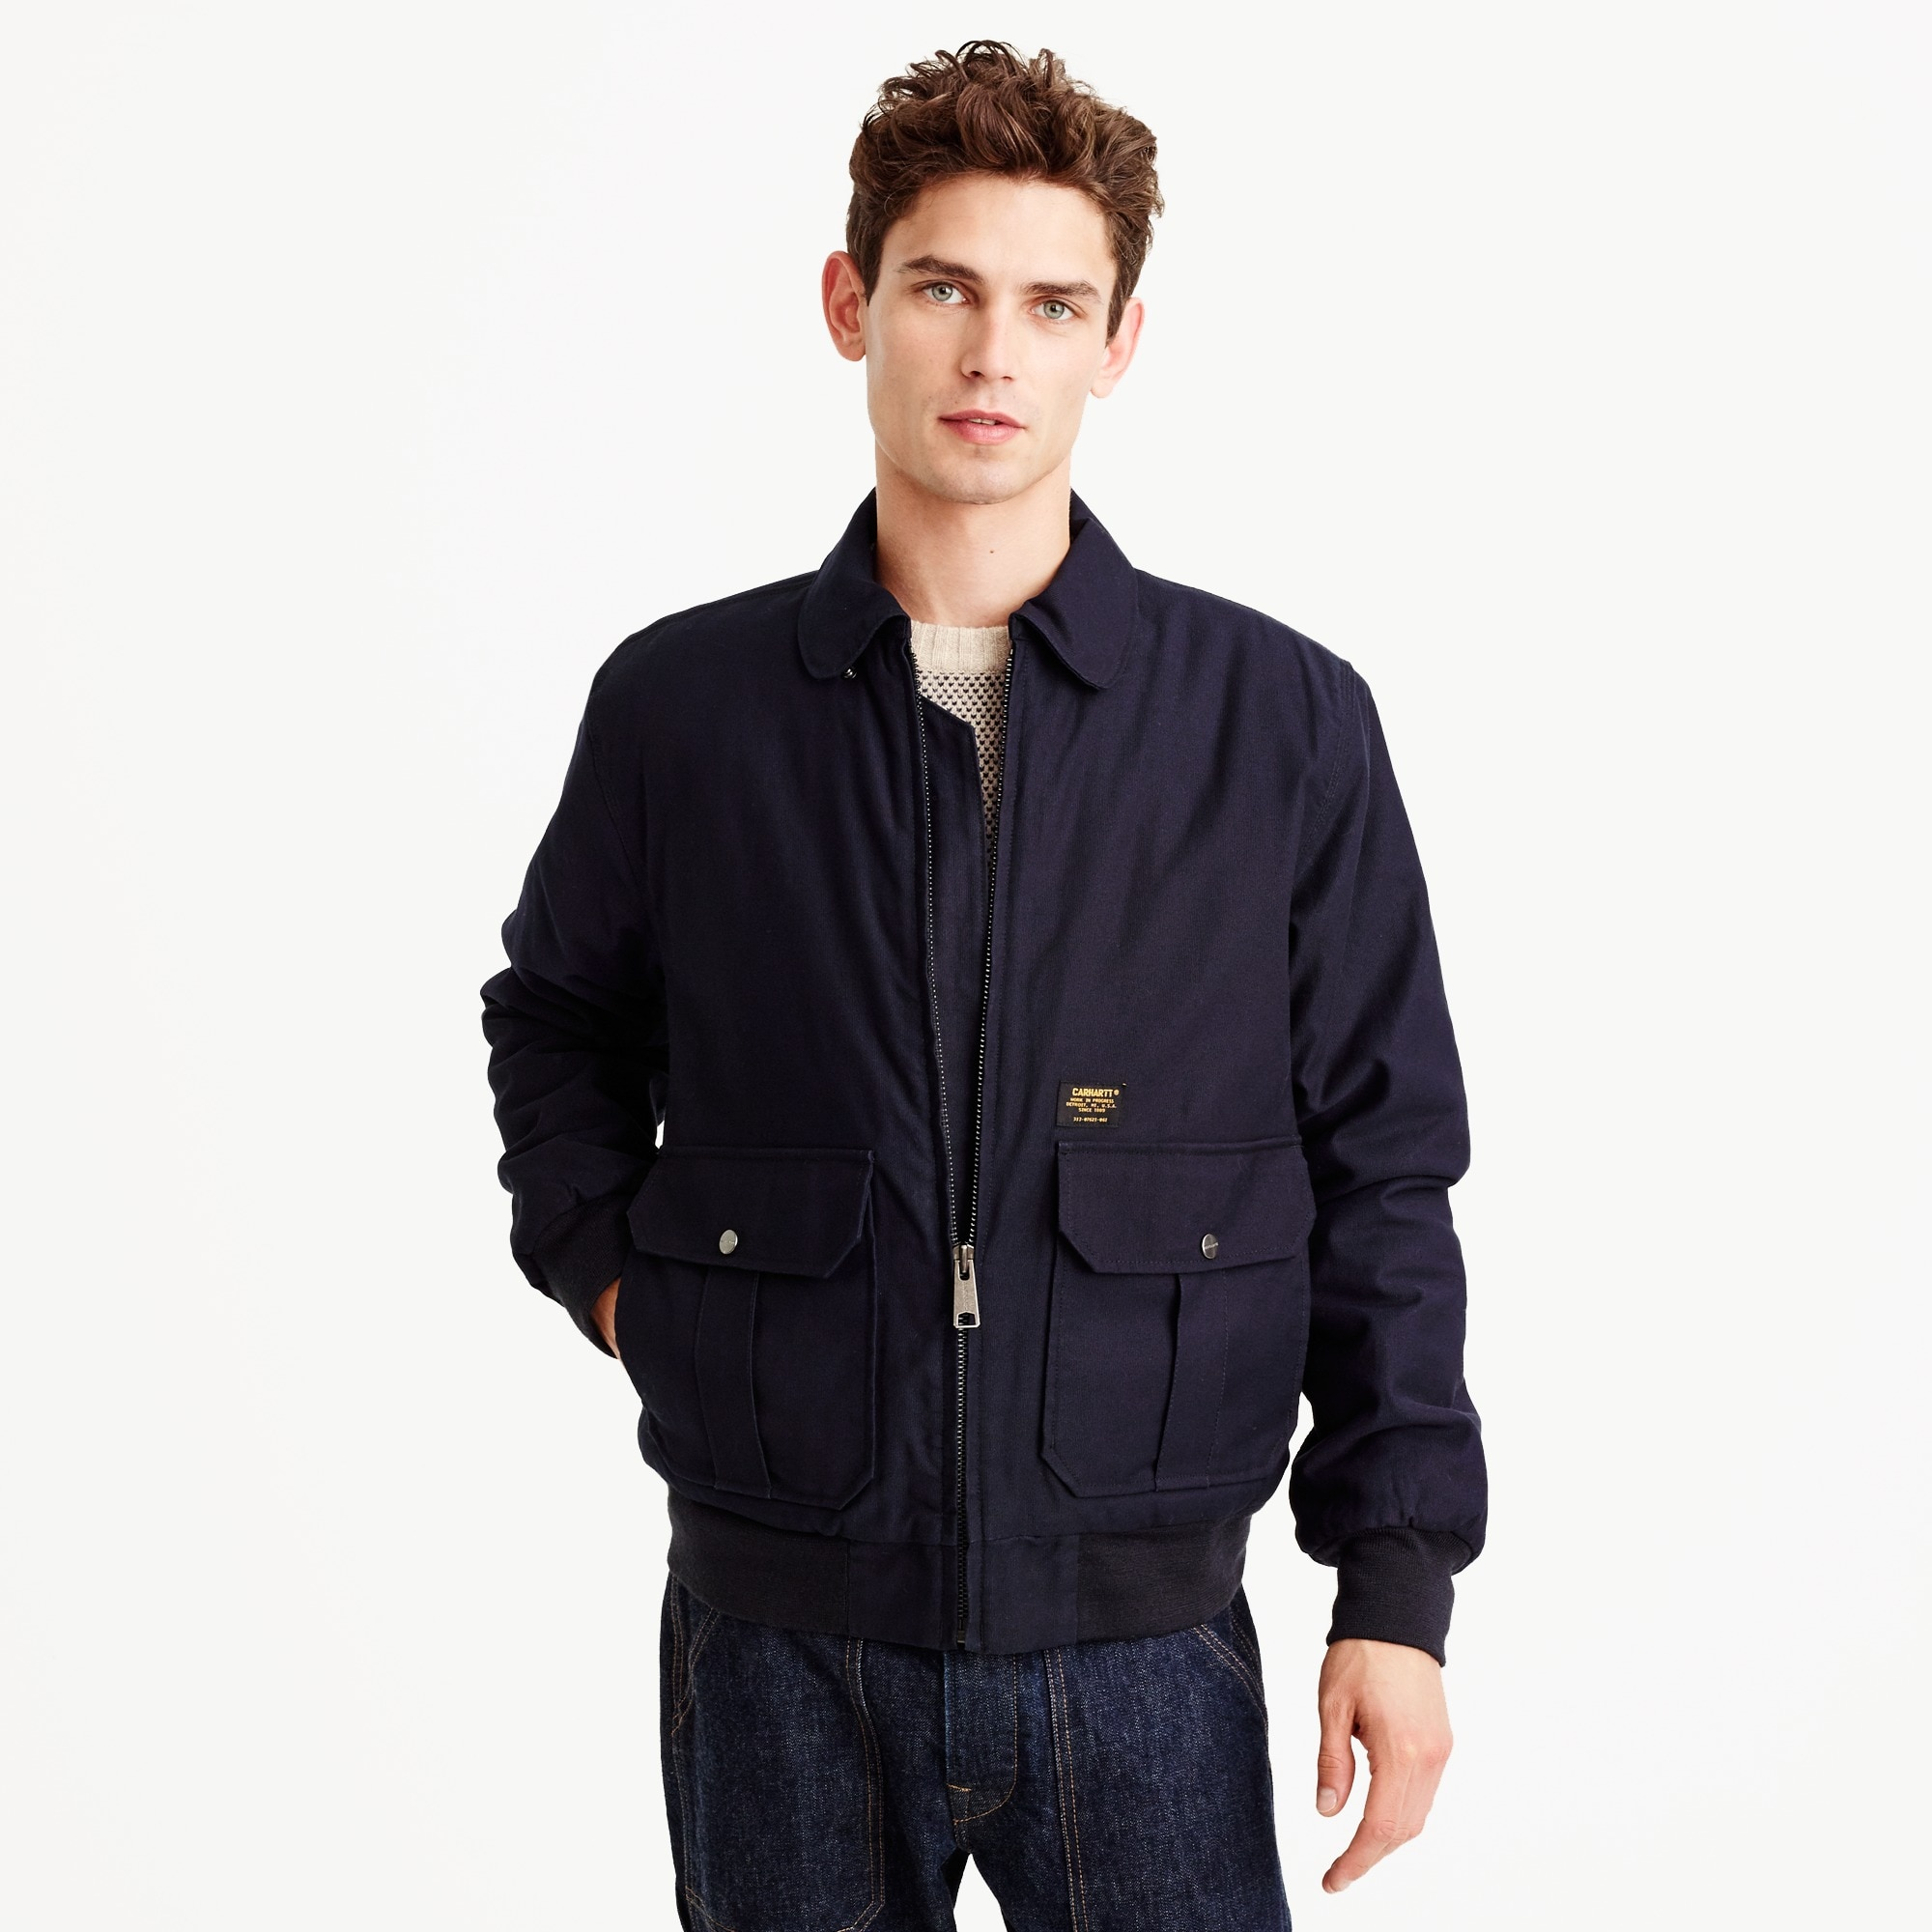 Carhartt® Work In Progress aviator jacket men j.crew in good company c